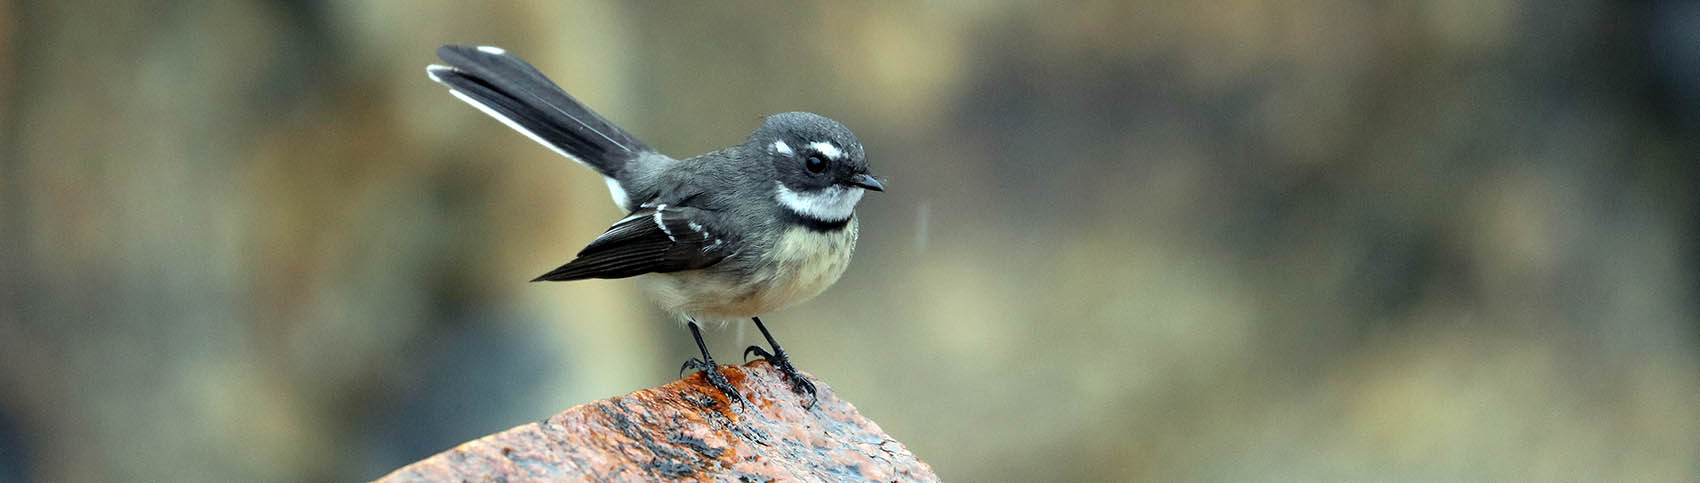 Grey Fantail (image by Damon Ramsey)